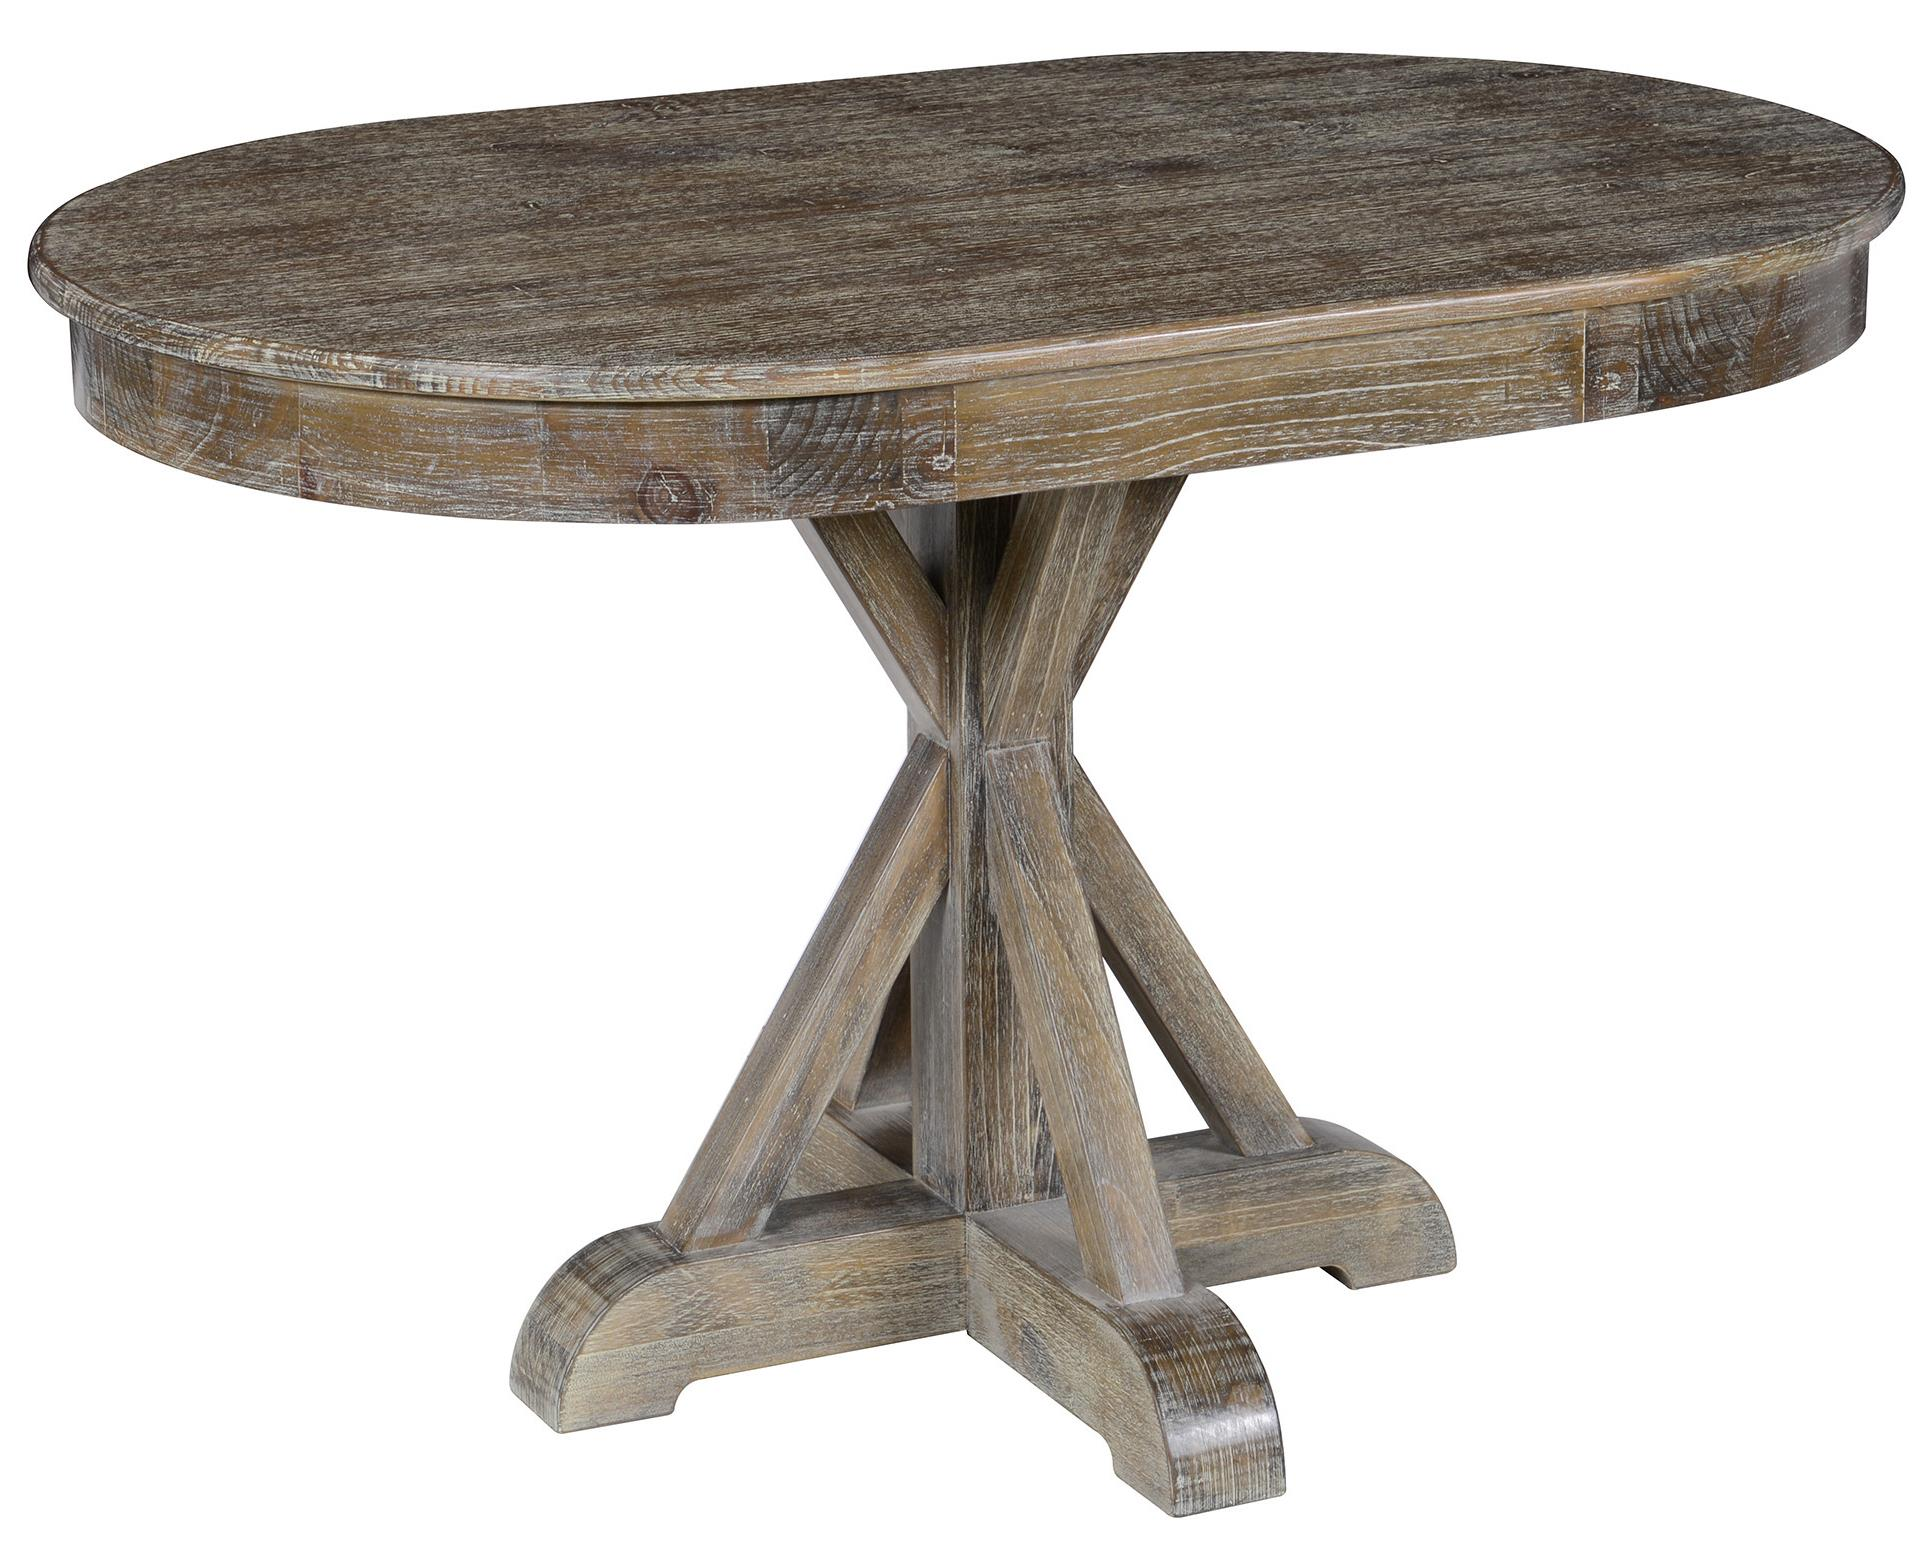 100 Classic Pine Trestle Table Reclaimed Wood Farmhouse  : products2Fclassichome2Fcolor2Fmaxwell 51004851004807 b1 from www.recoverhome.com size 1923 x 1543 jpeg 296kB